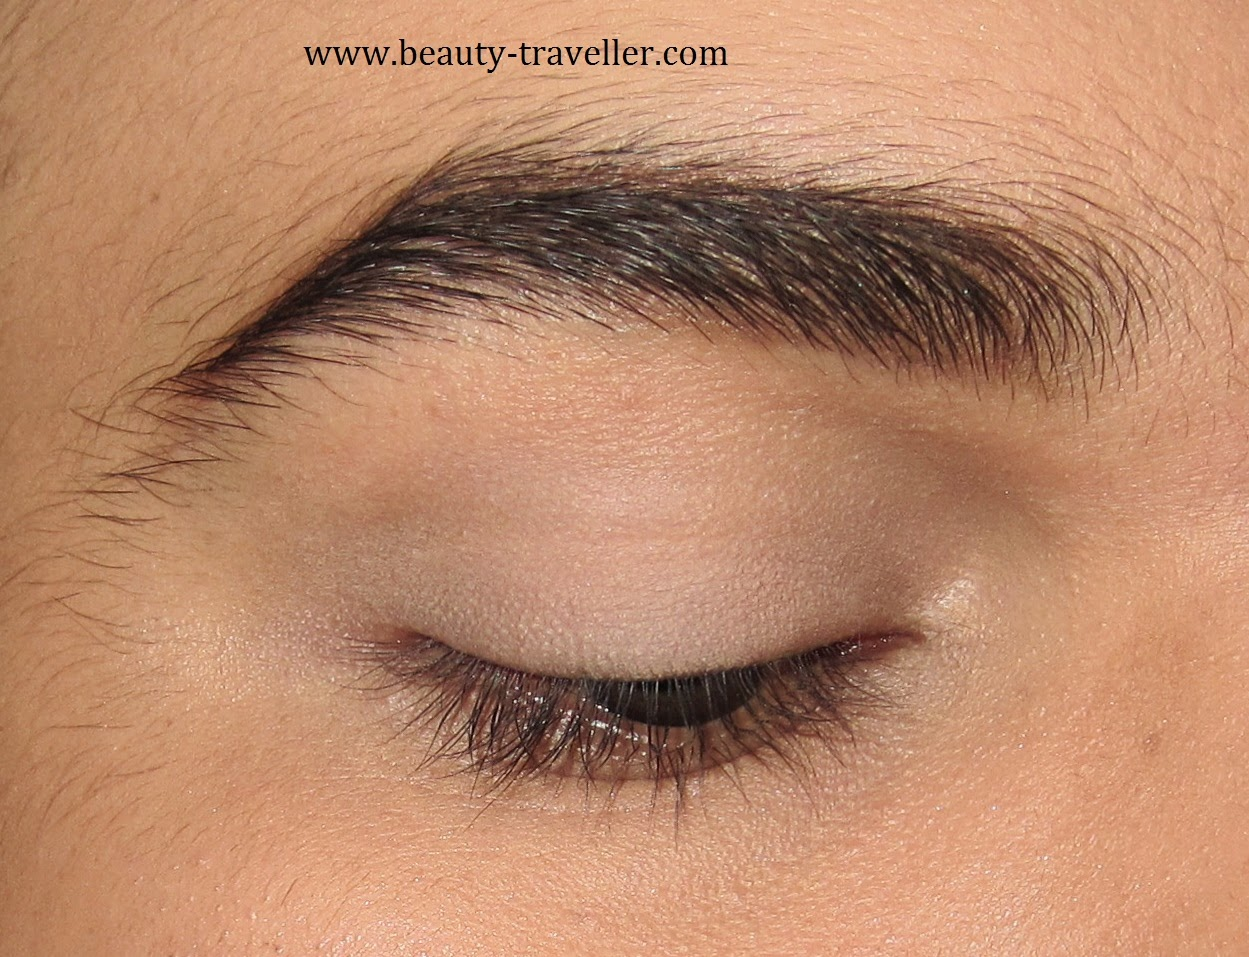 Add Some More Of Guerlain Eyeshadow Primer To Let The Eyeshadows Adhere  Better And Nicely I